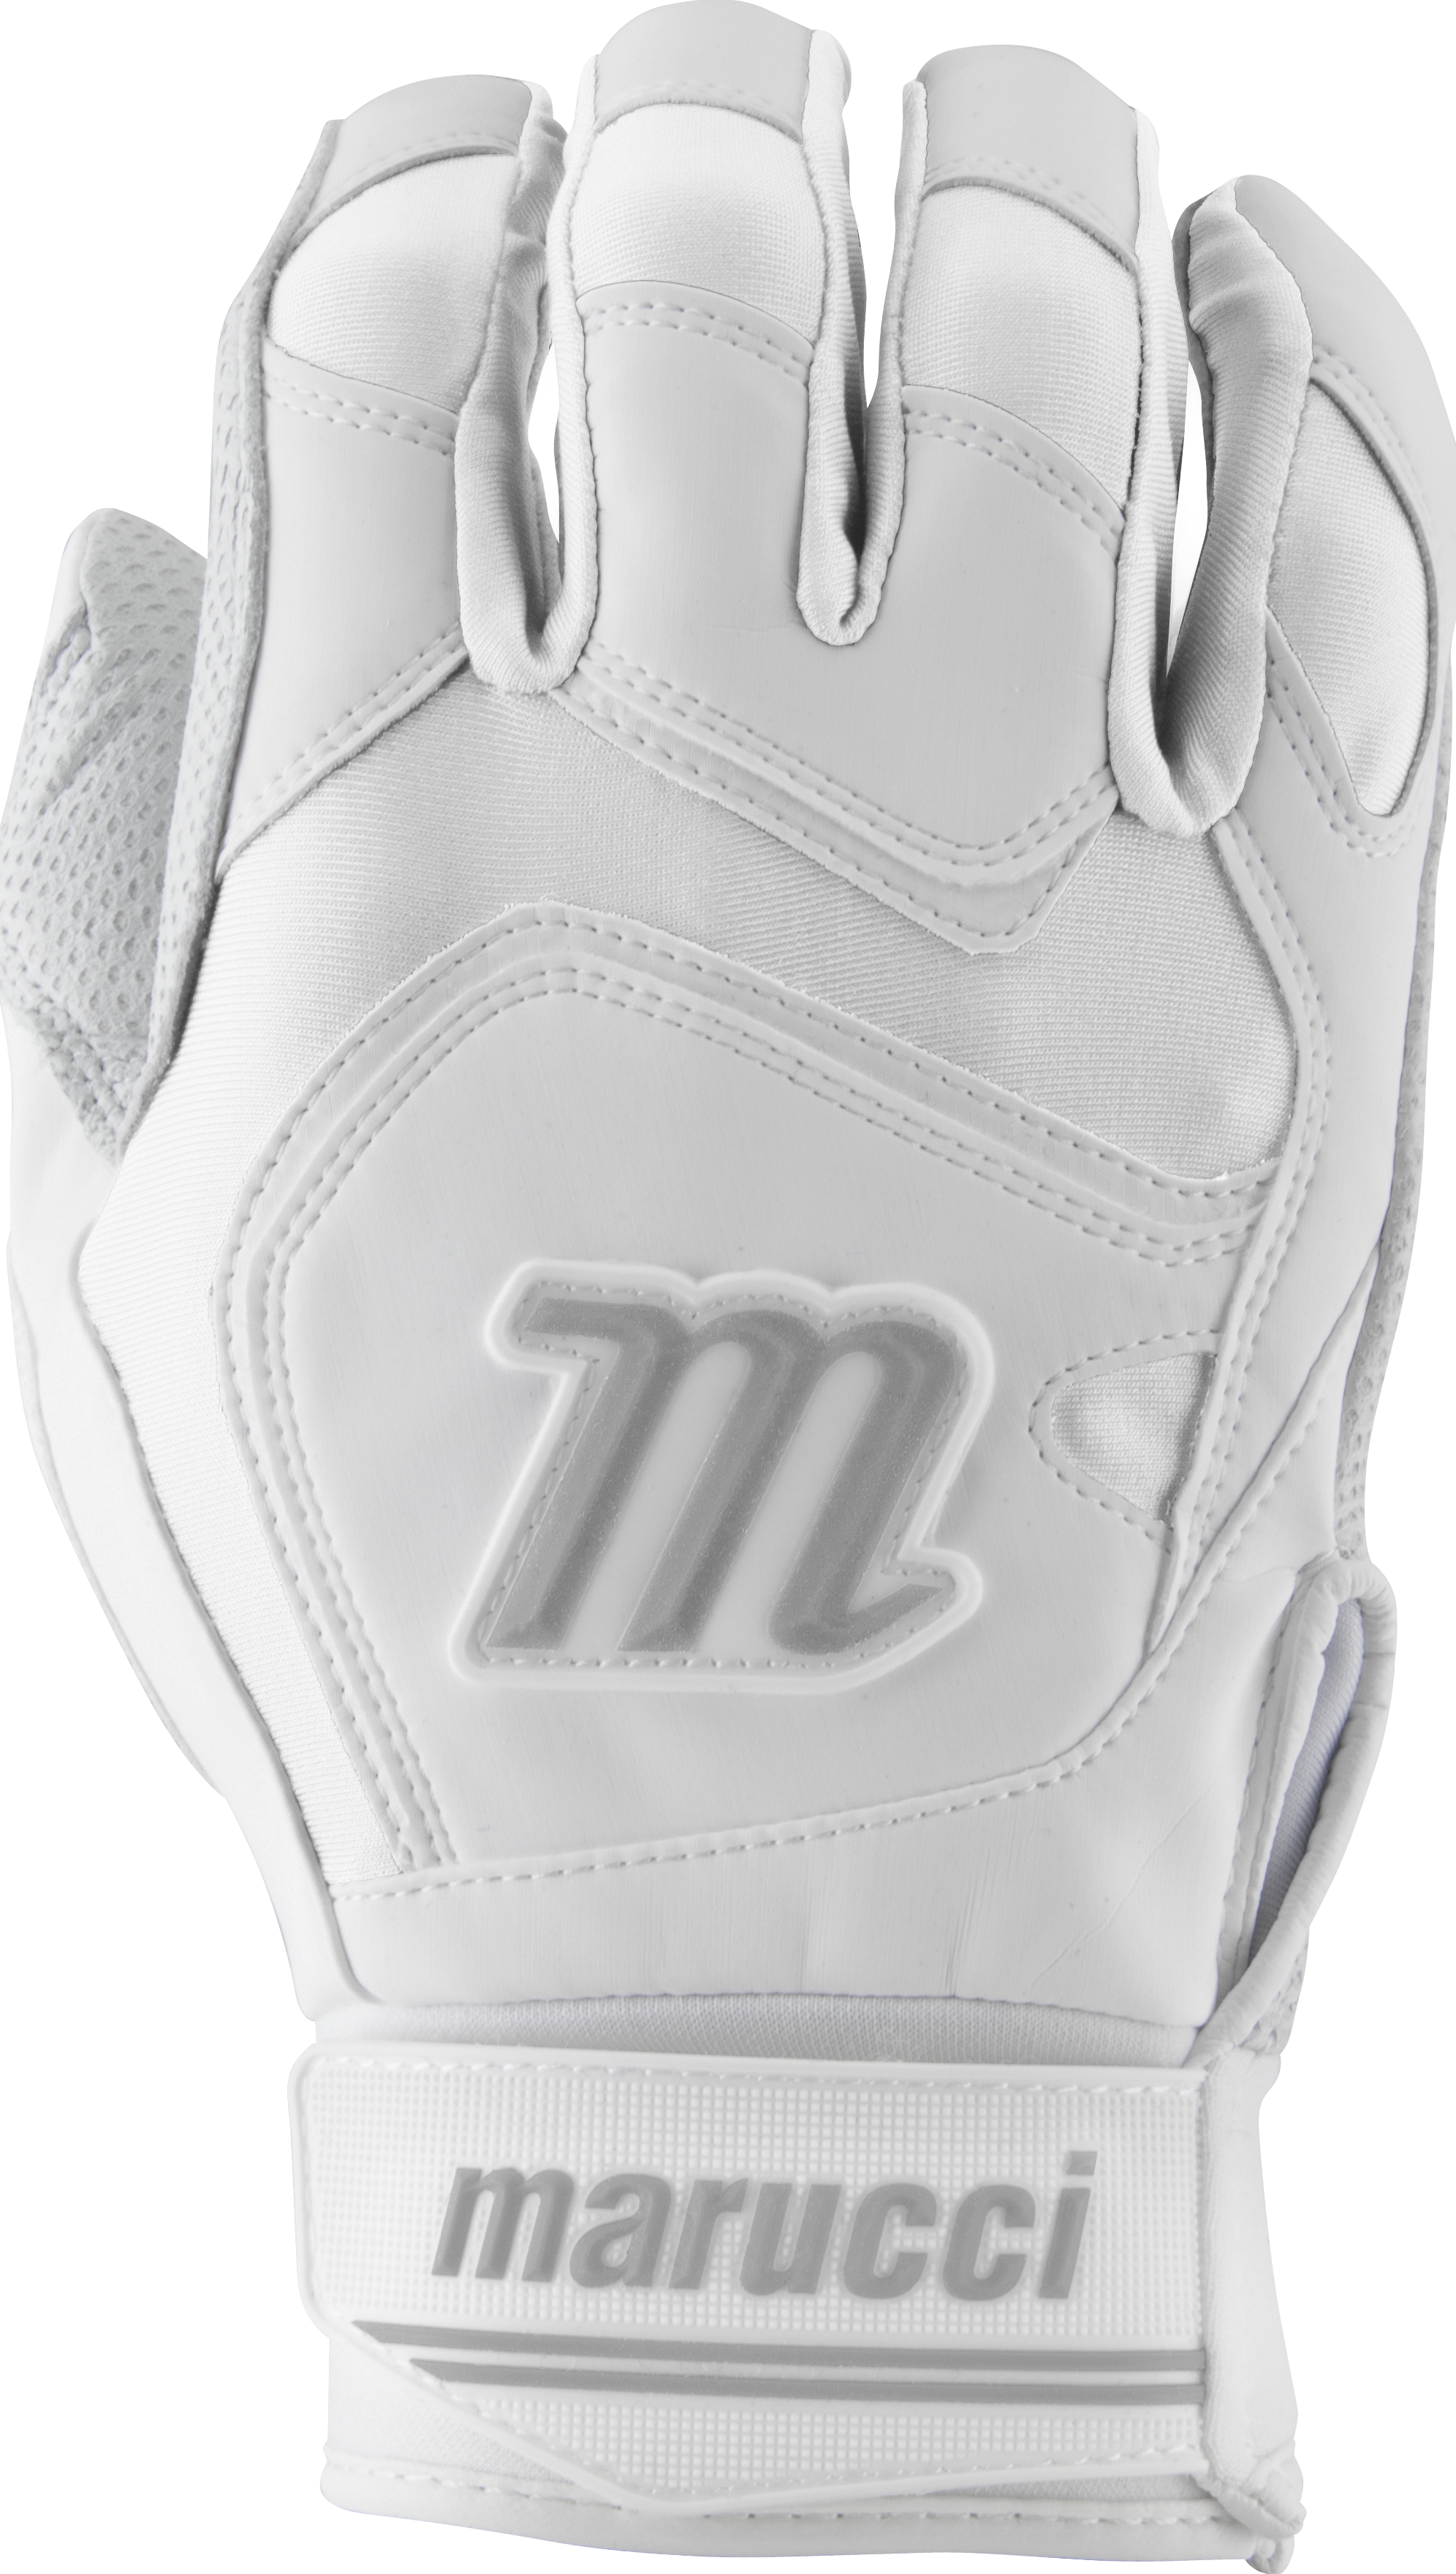 marucci-signature-batting-gloves-mbgsgn2-1-pair-white-white-adult-large MBGSGN2-WW-AL Marucci 849817096833 2019 Model MBGSGN2 Consistency And Craftsmanship Commitment To Quality And Understanding